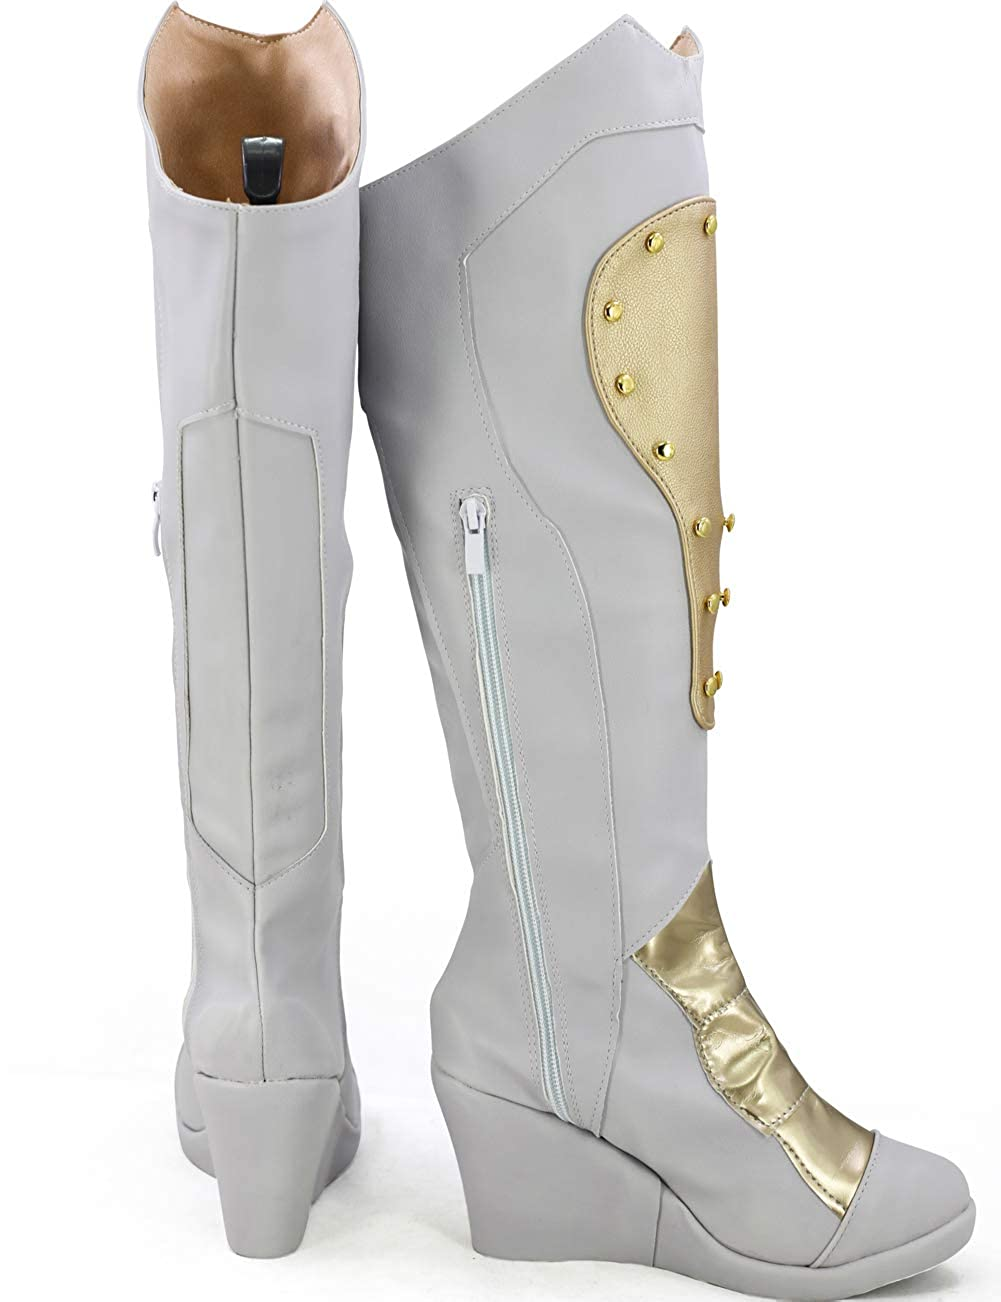 GOTEDDY Women Girl Boots Halloween Cosplay White Shoes Costume Accessories